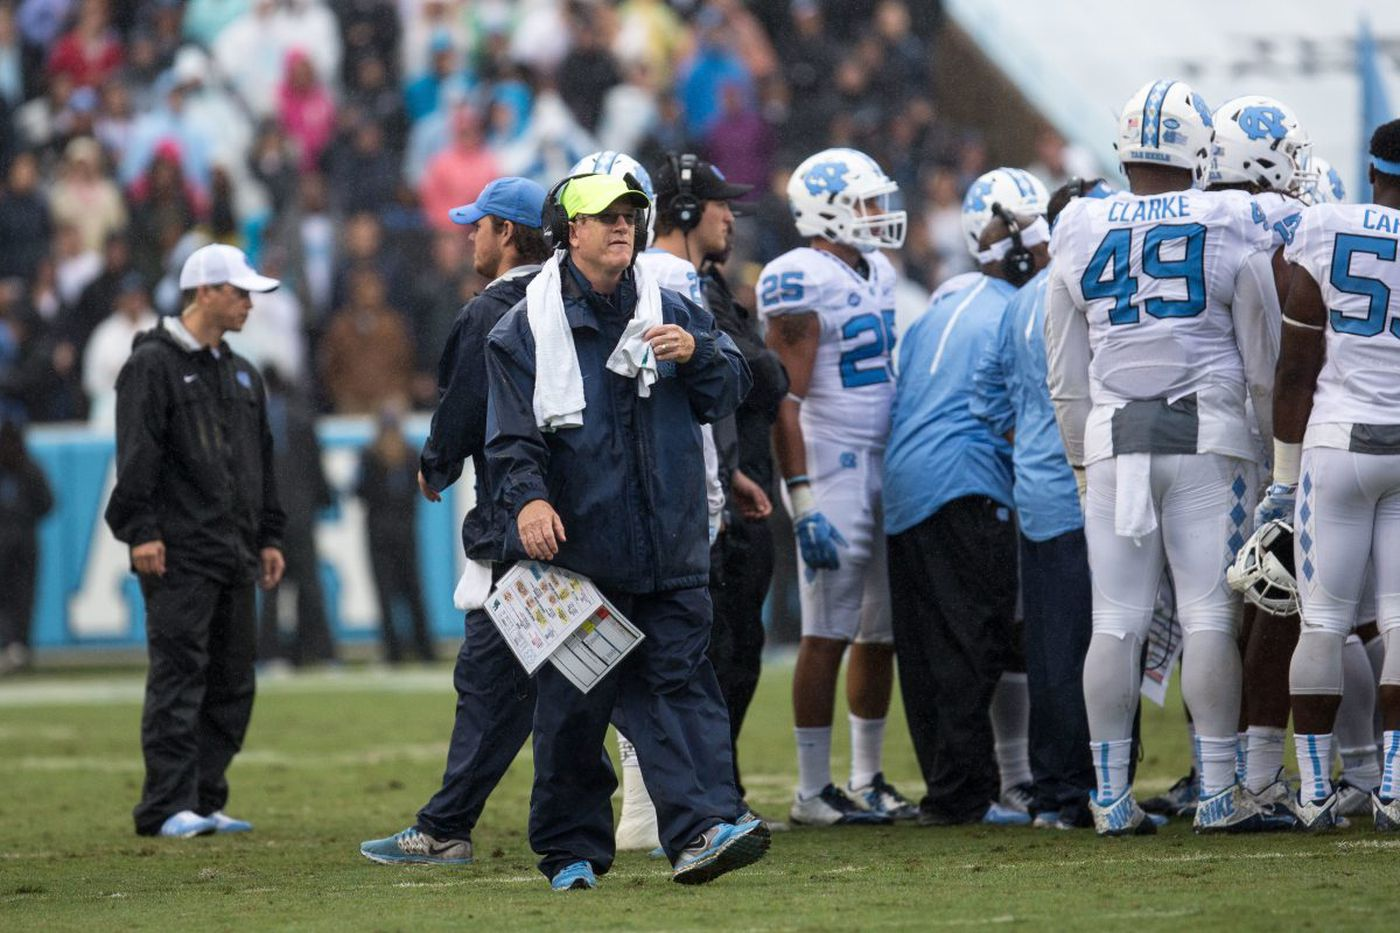 Source: Eagles to hire North Carolina's Gunter Brewer as wide receivers coach